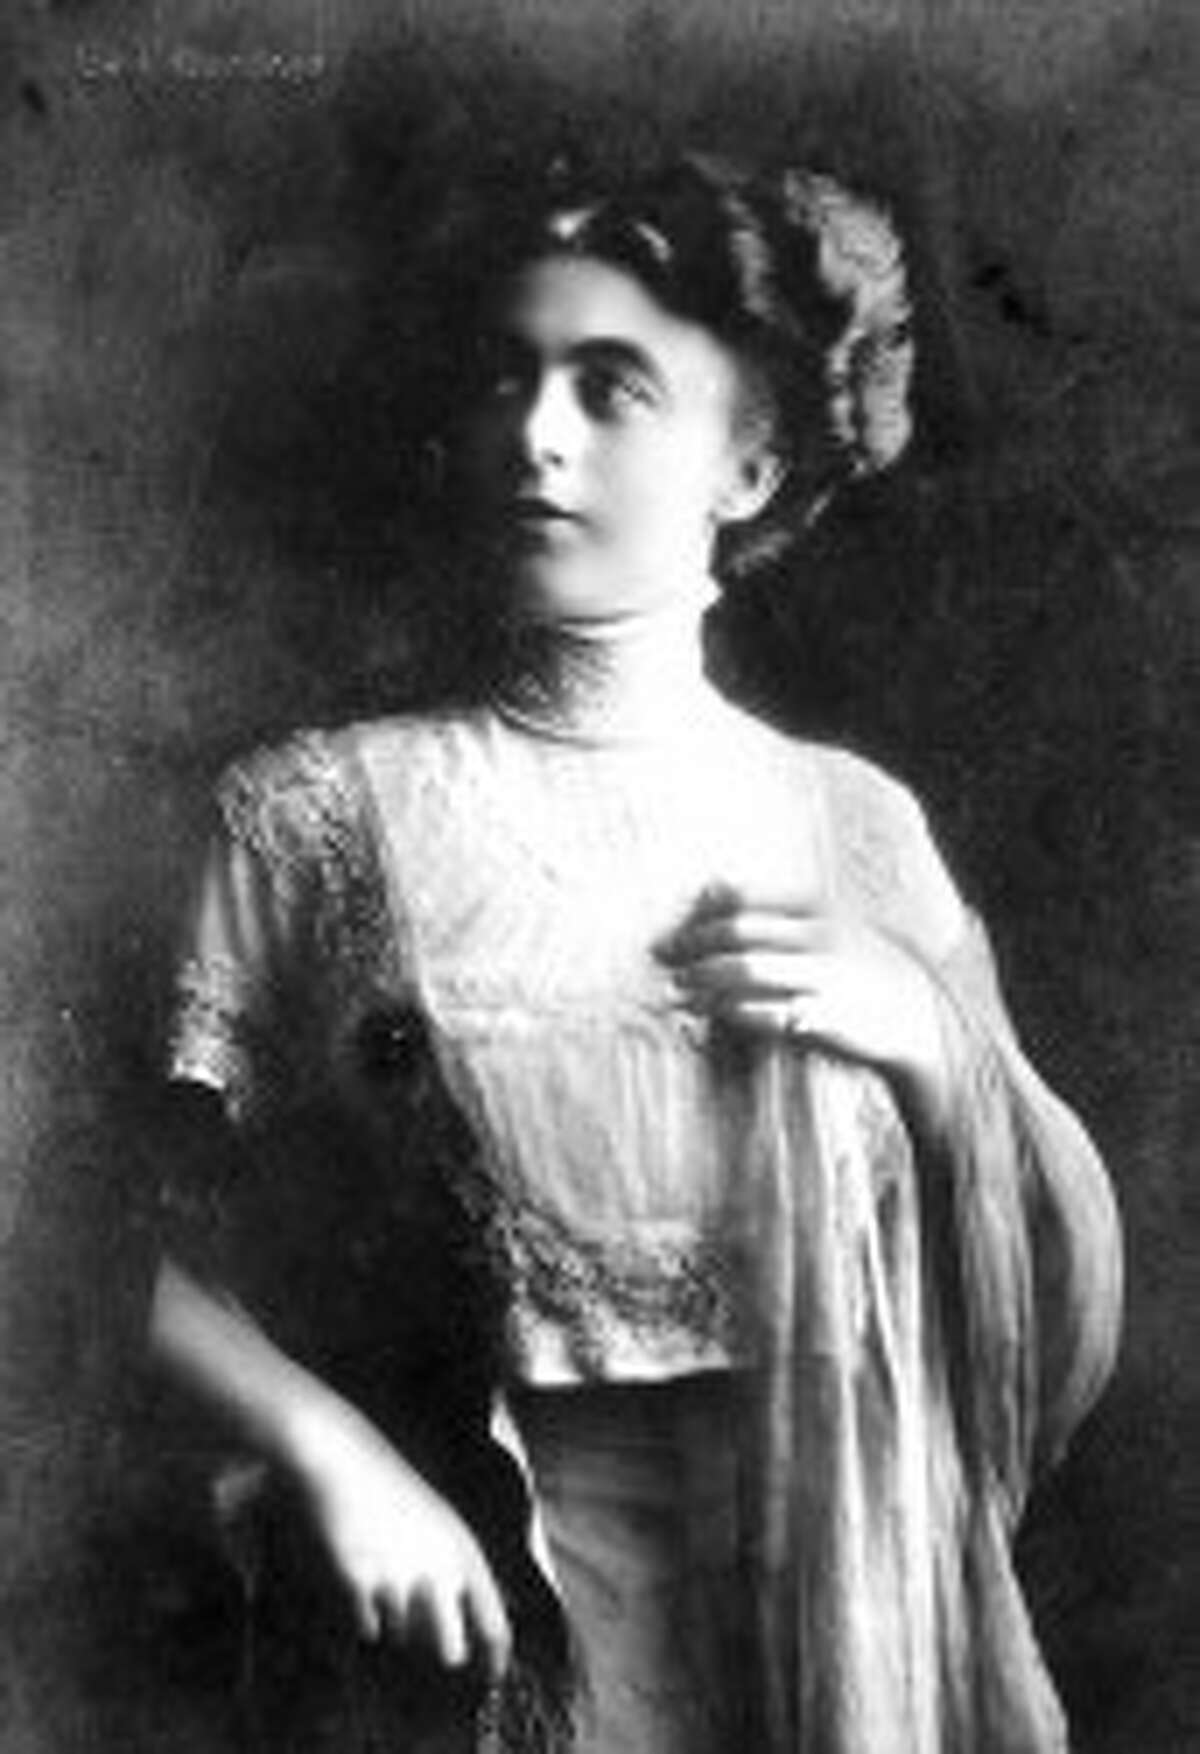 Manistee native and world reknowned Grand Opera singer, Gail Gardner, circa early 1900s. (Courtesy Photo/Manistee County Historical Museum)